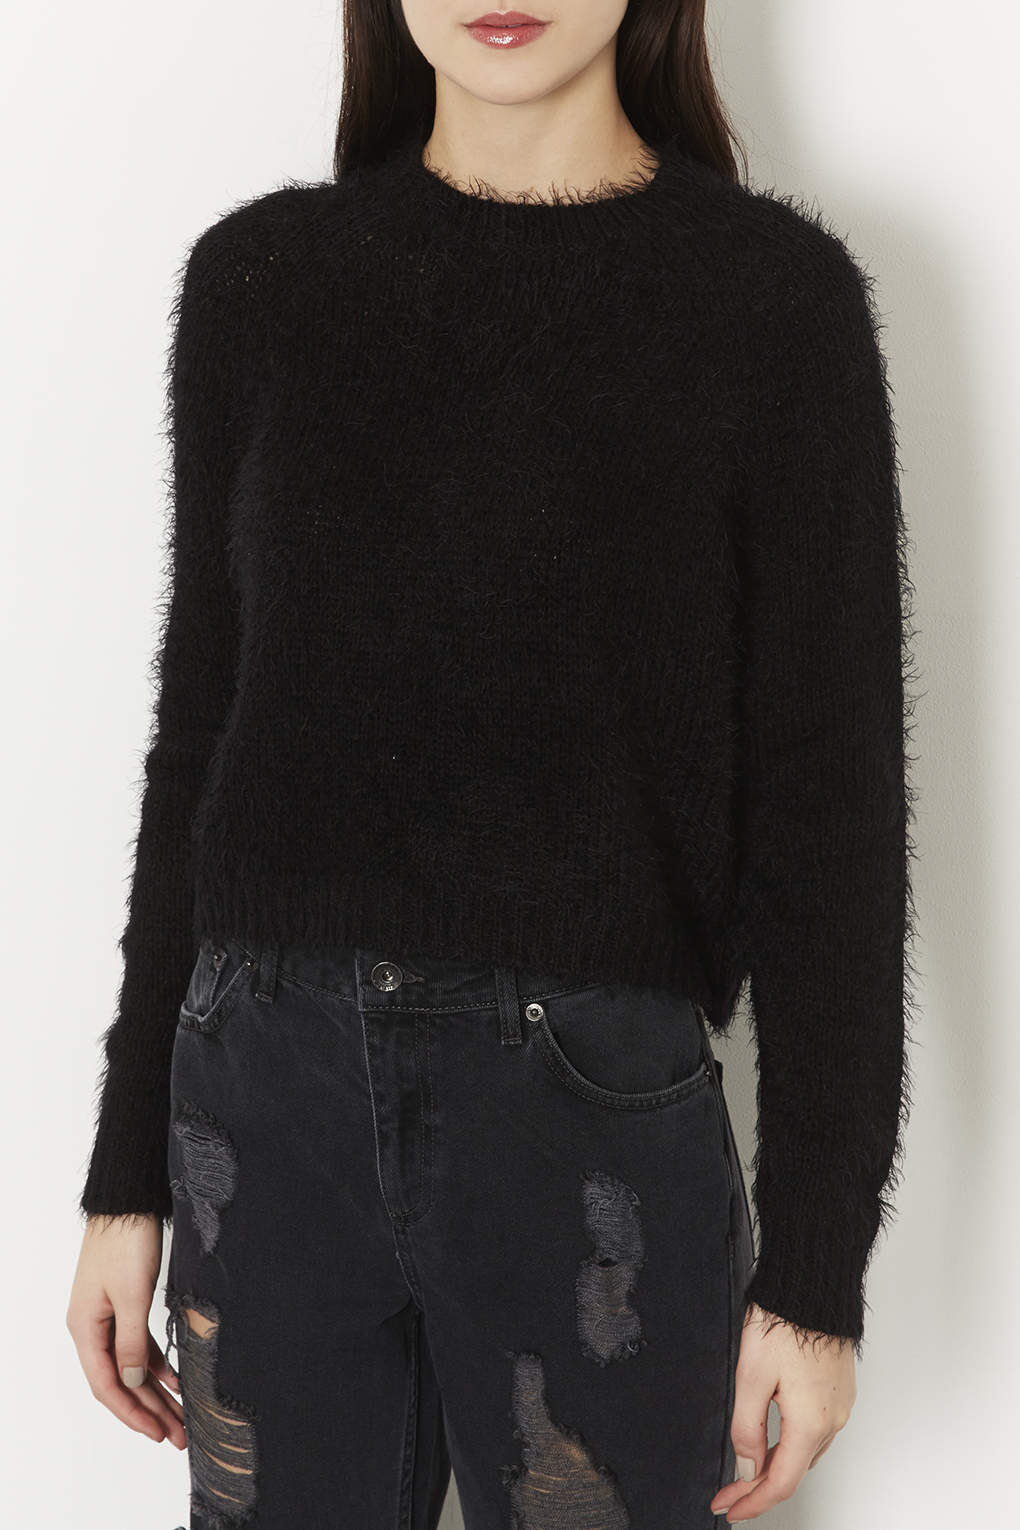 You searched for: fluffy knit jumper! Etsy is the home to thousands of handmade, vintage, and one-of-a-kind products and gifts related to your search. No matter what you're looking for or where you are in the world, our global marketplace of sellers can help you find unique and affordable options. Let's get started!